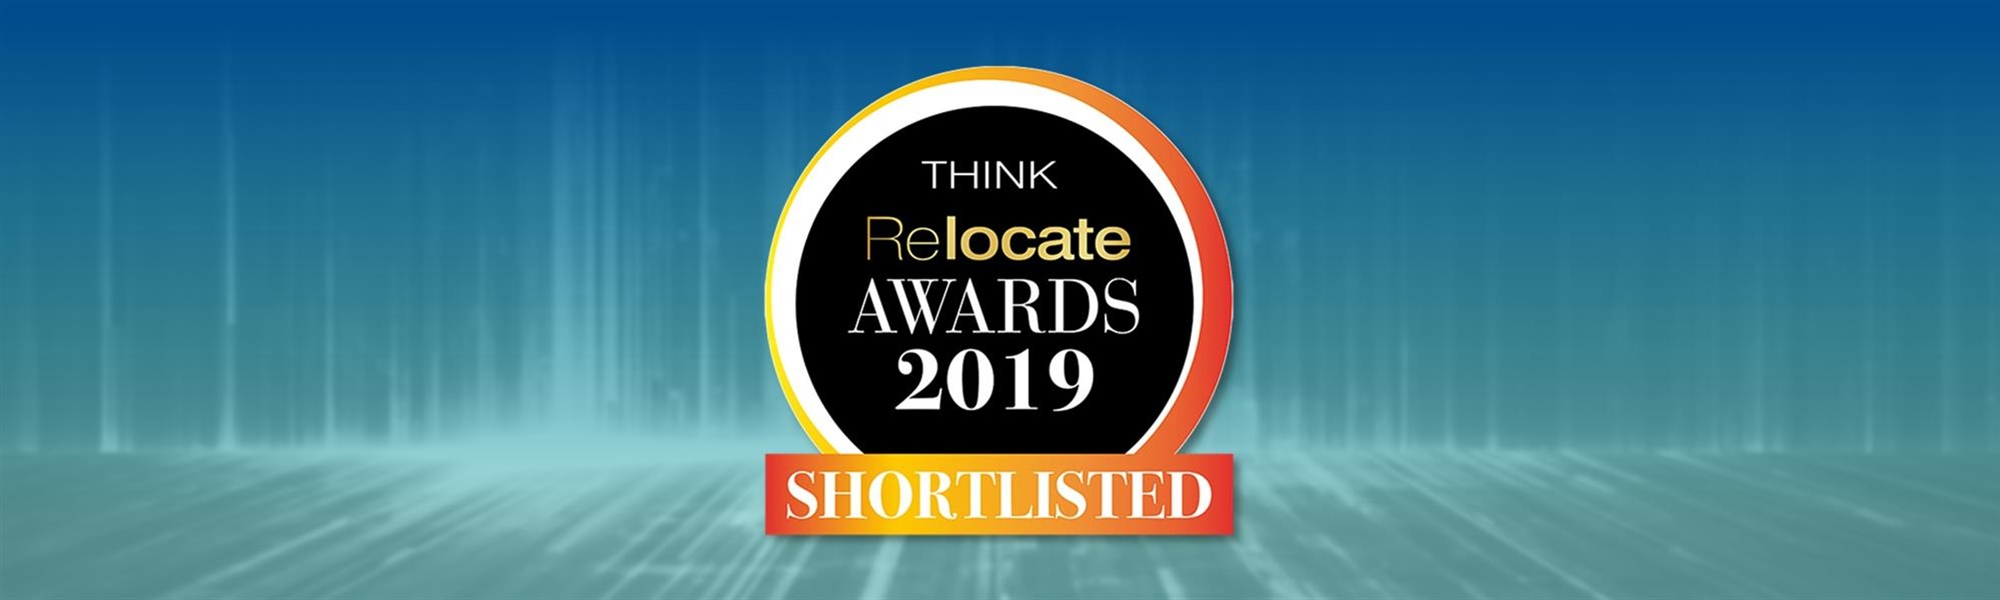 NEI Shortlisted Twice In Relocate Awards